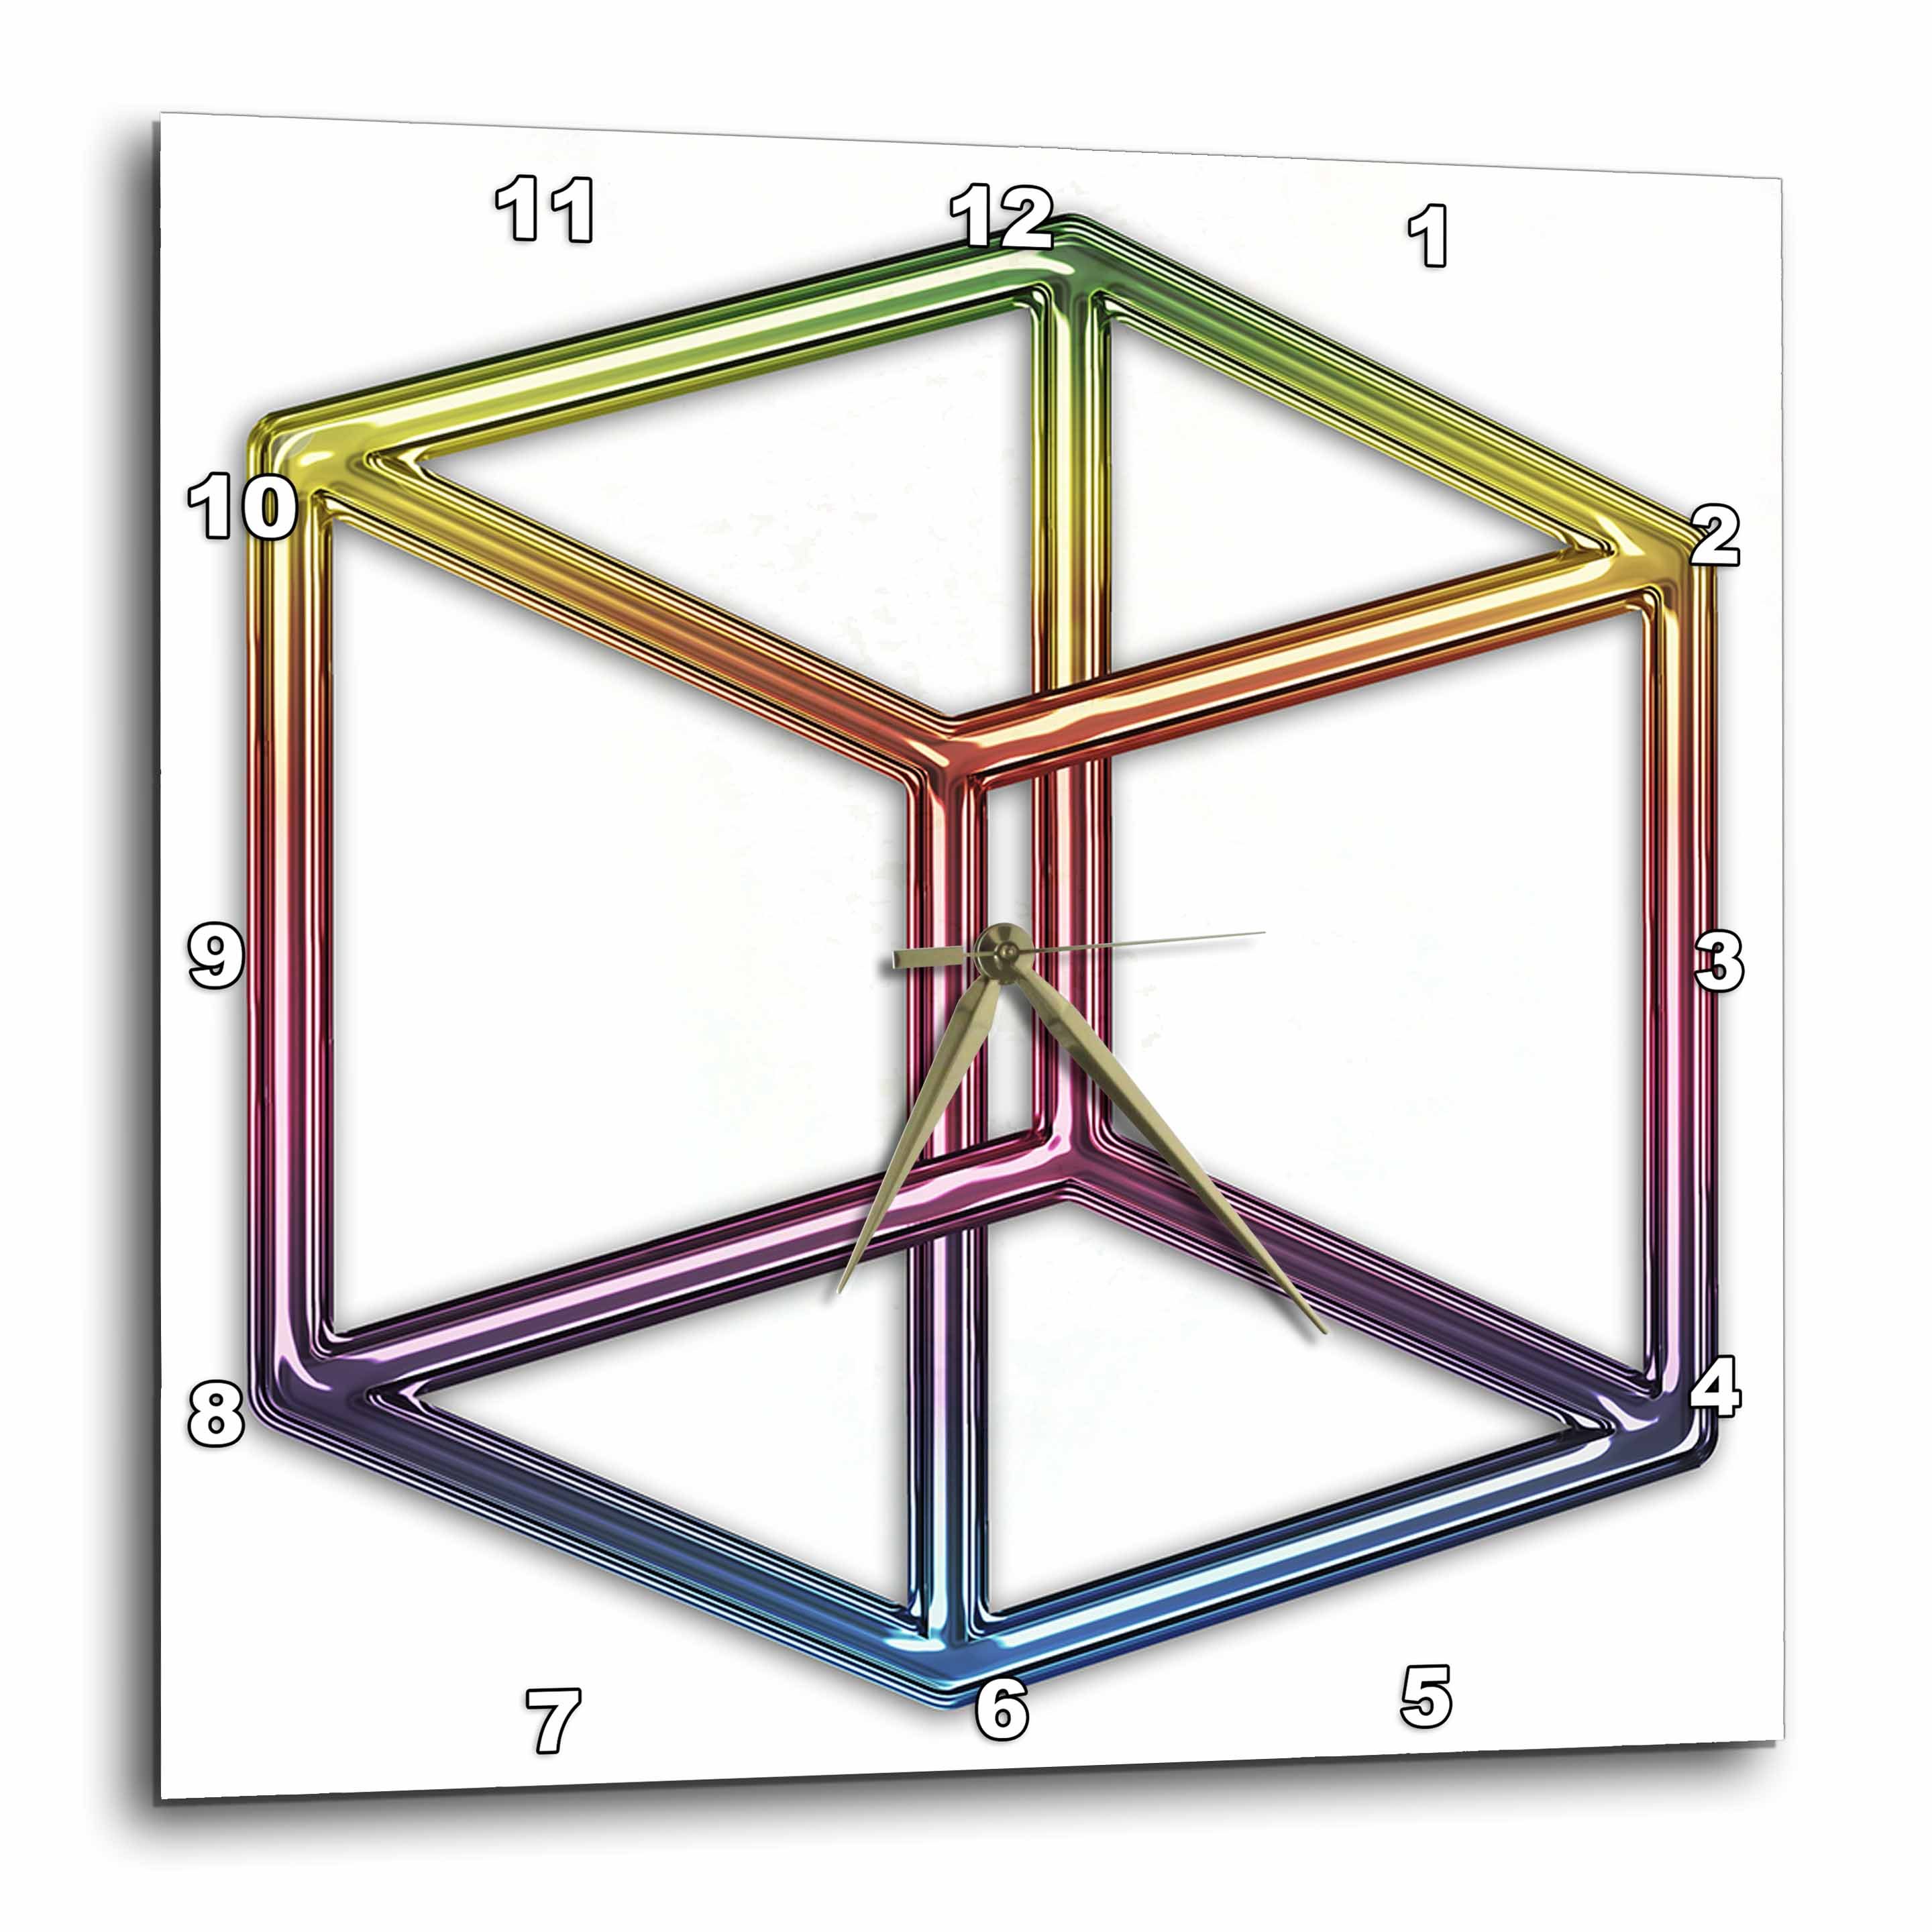 3dRose Escher s Impossible Cube rainbow on white background, Wall Clock, 10 by 10-inch